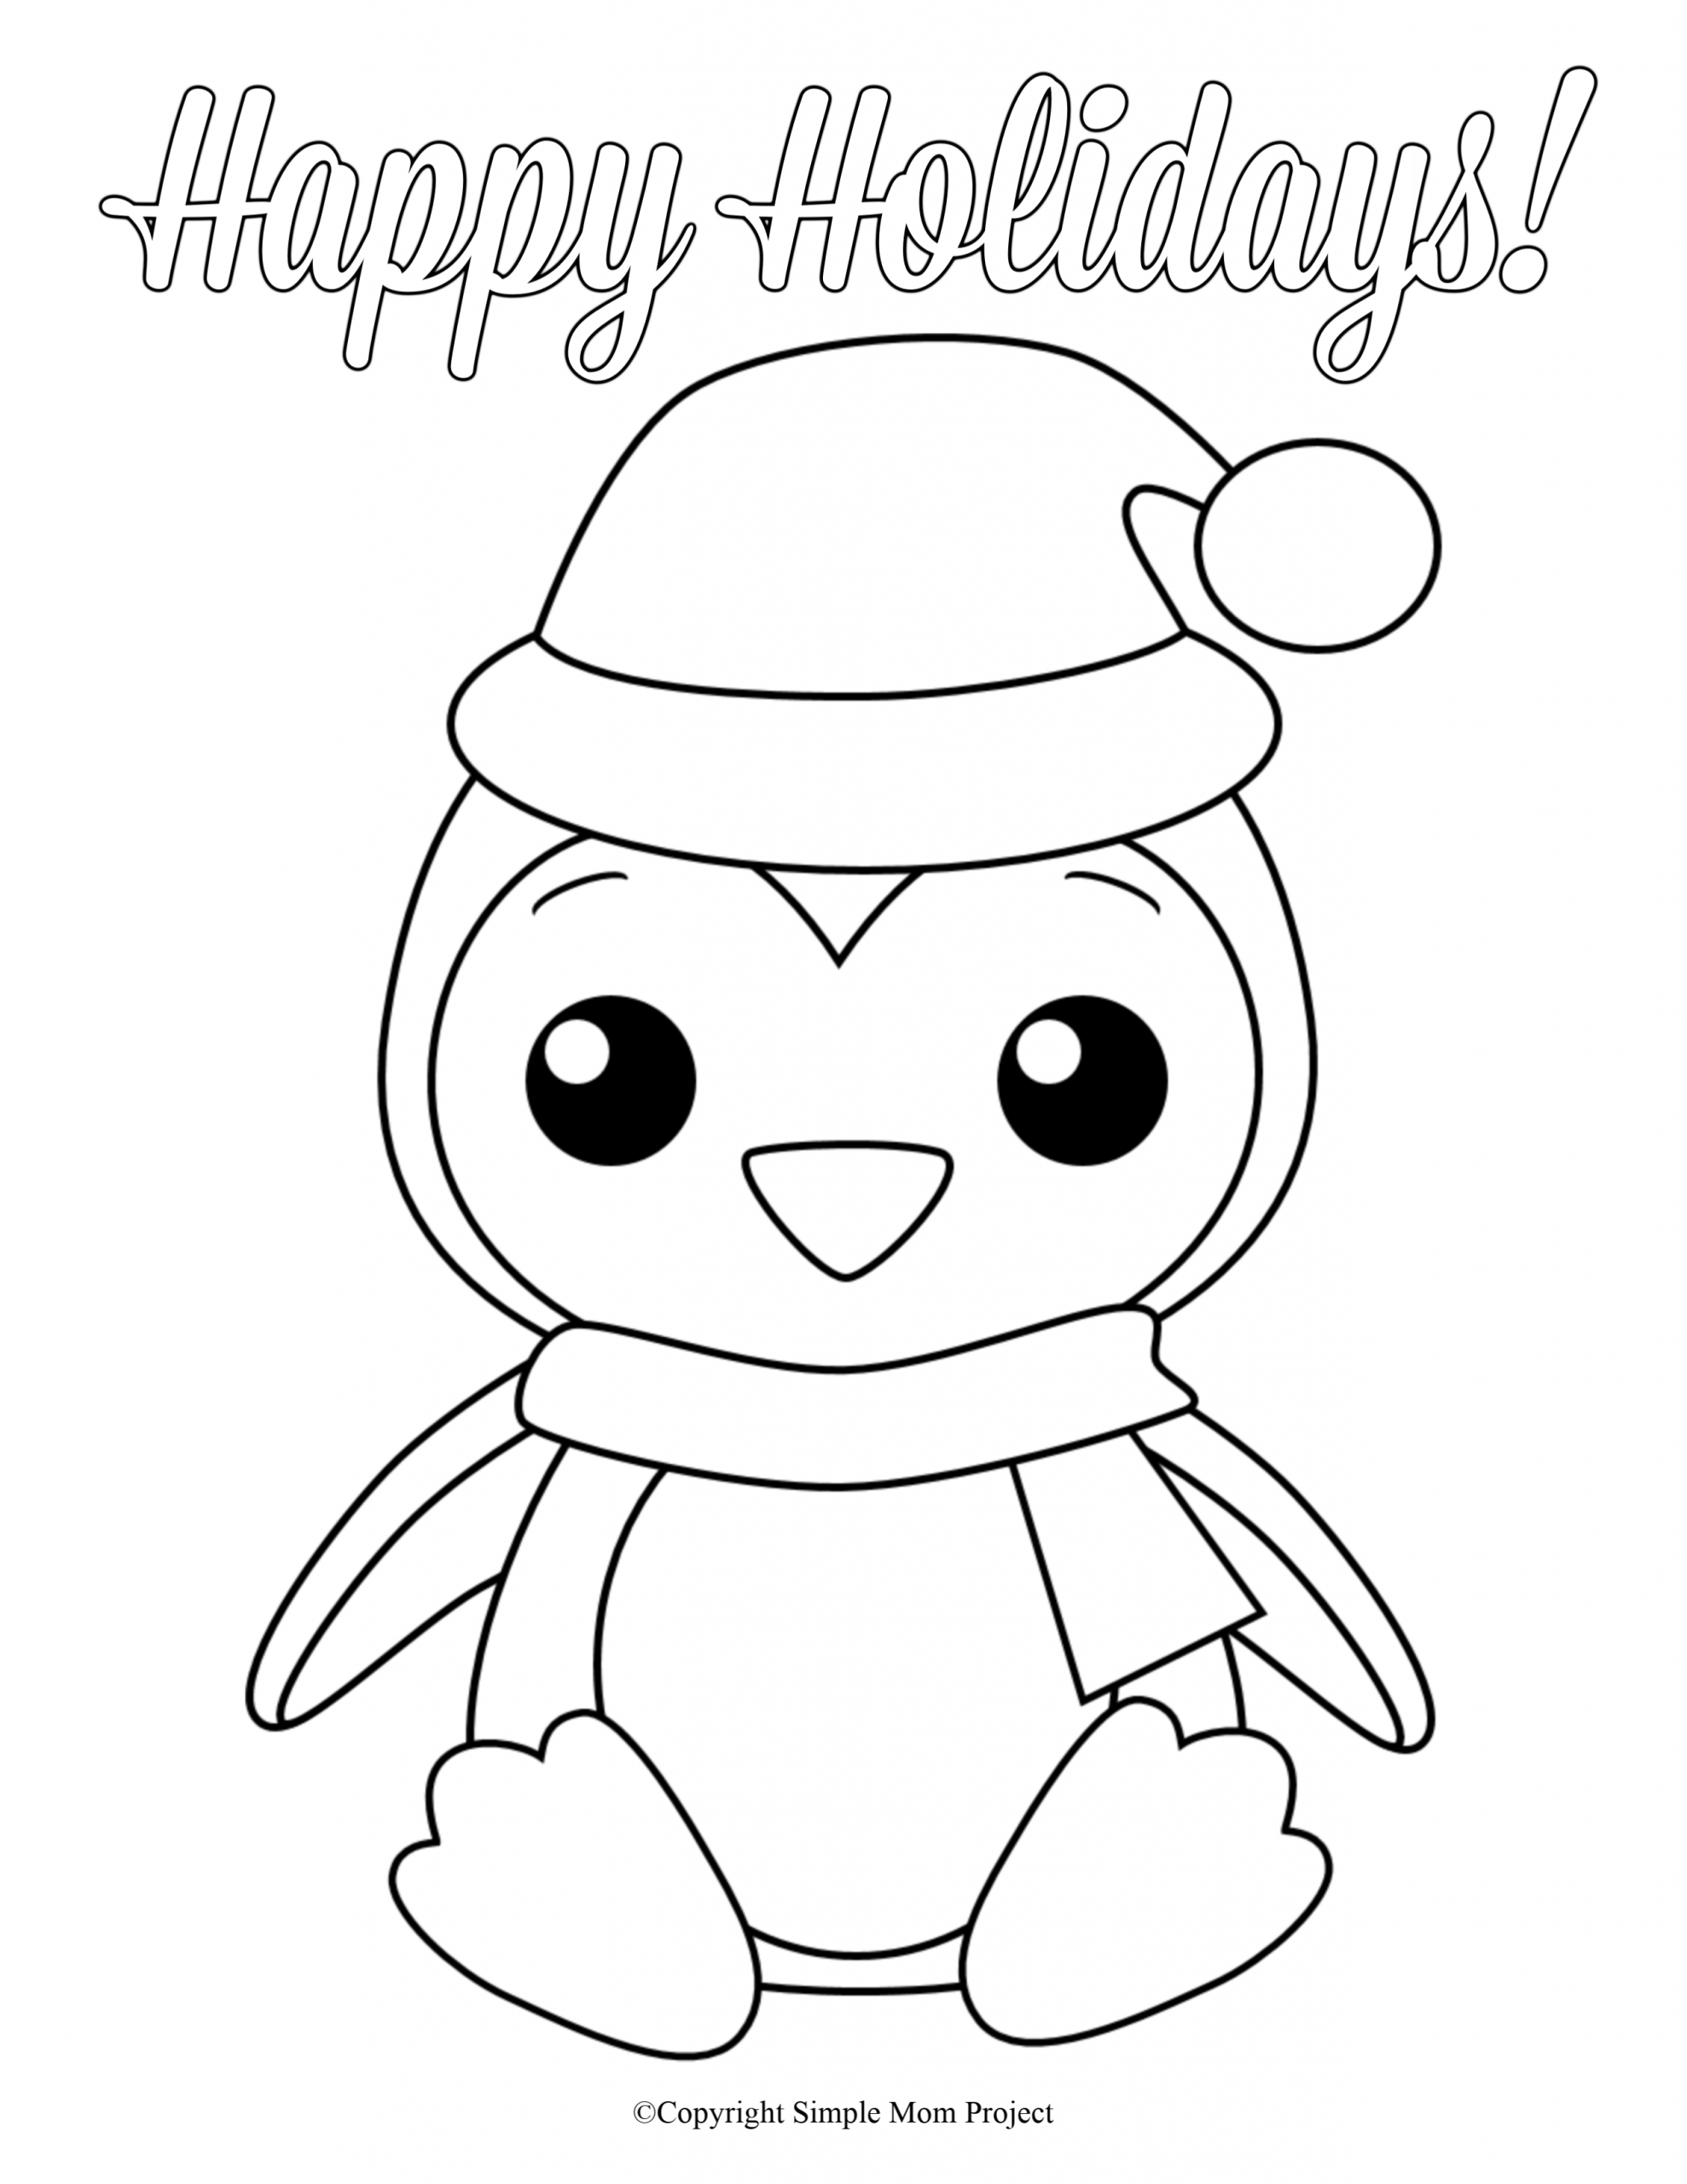 8 Free Printable Large Snowflake Templates Christmas Coloring Sheets Coloring Sheets For Kids Penguin Coloring Pages